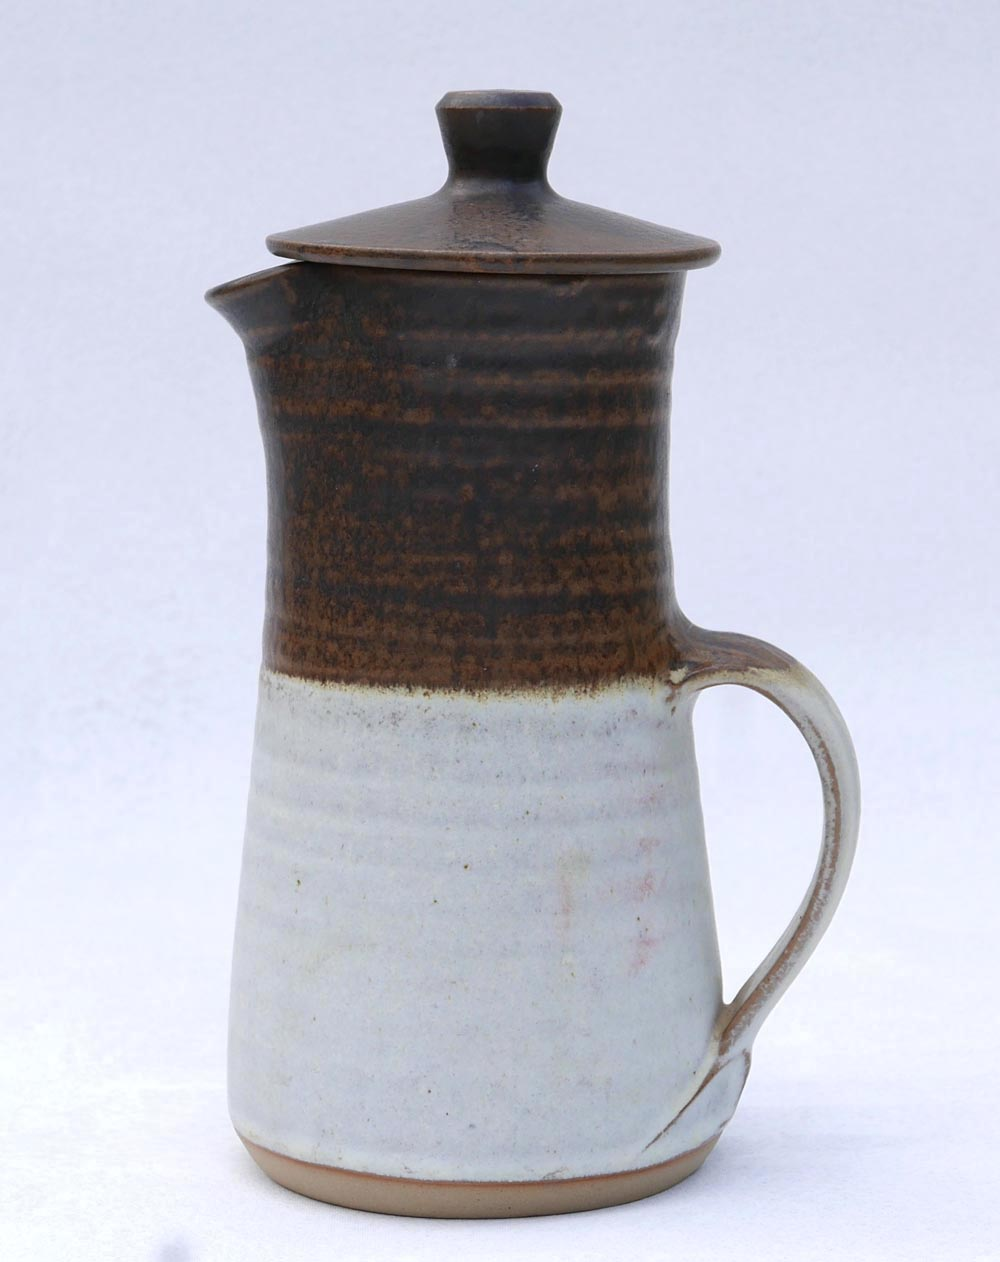 Coffee pot, WP mark - Probably Wilan Pottery, Wales  032910